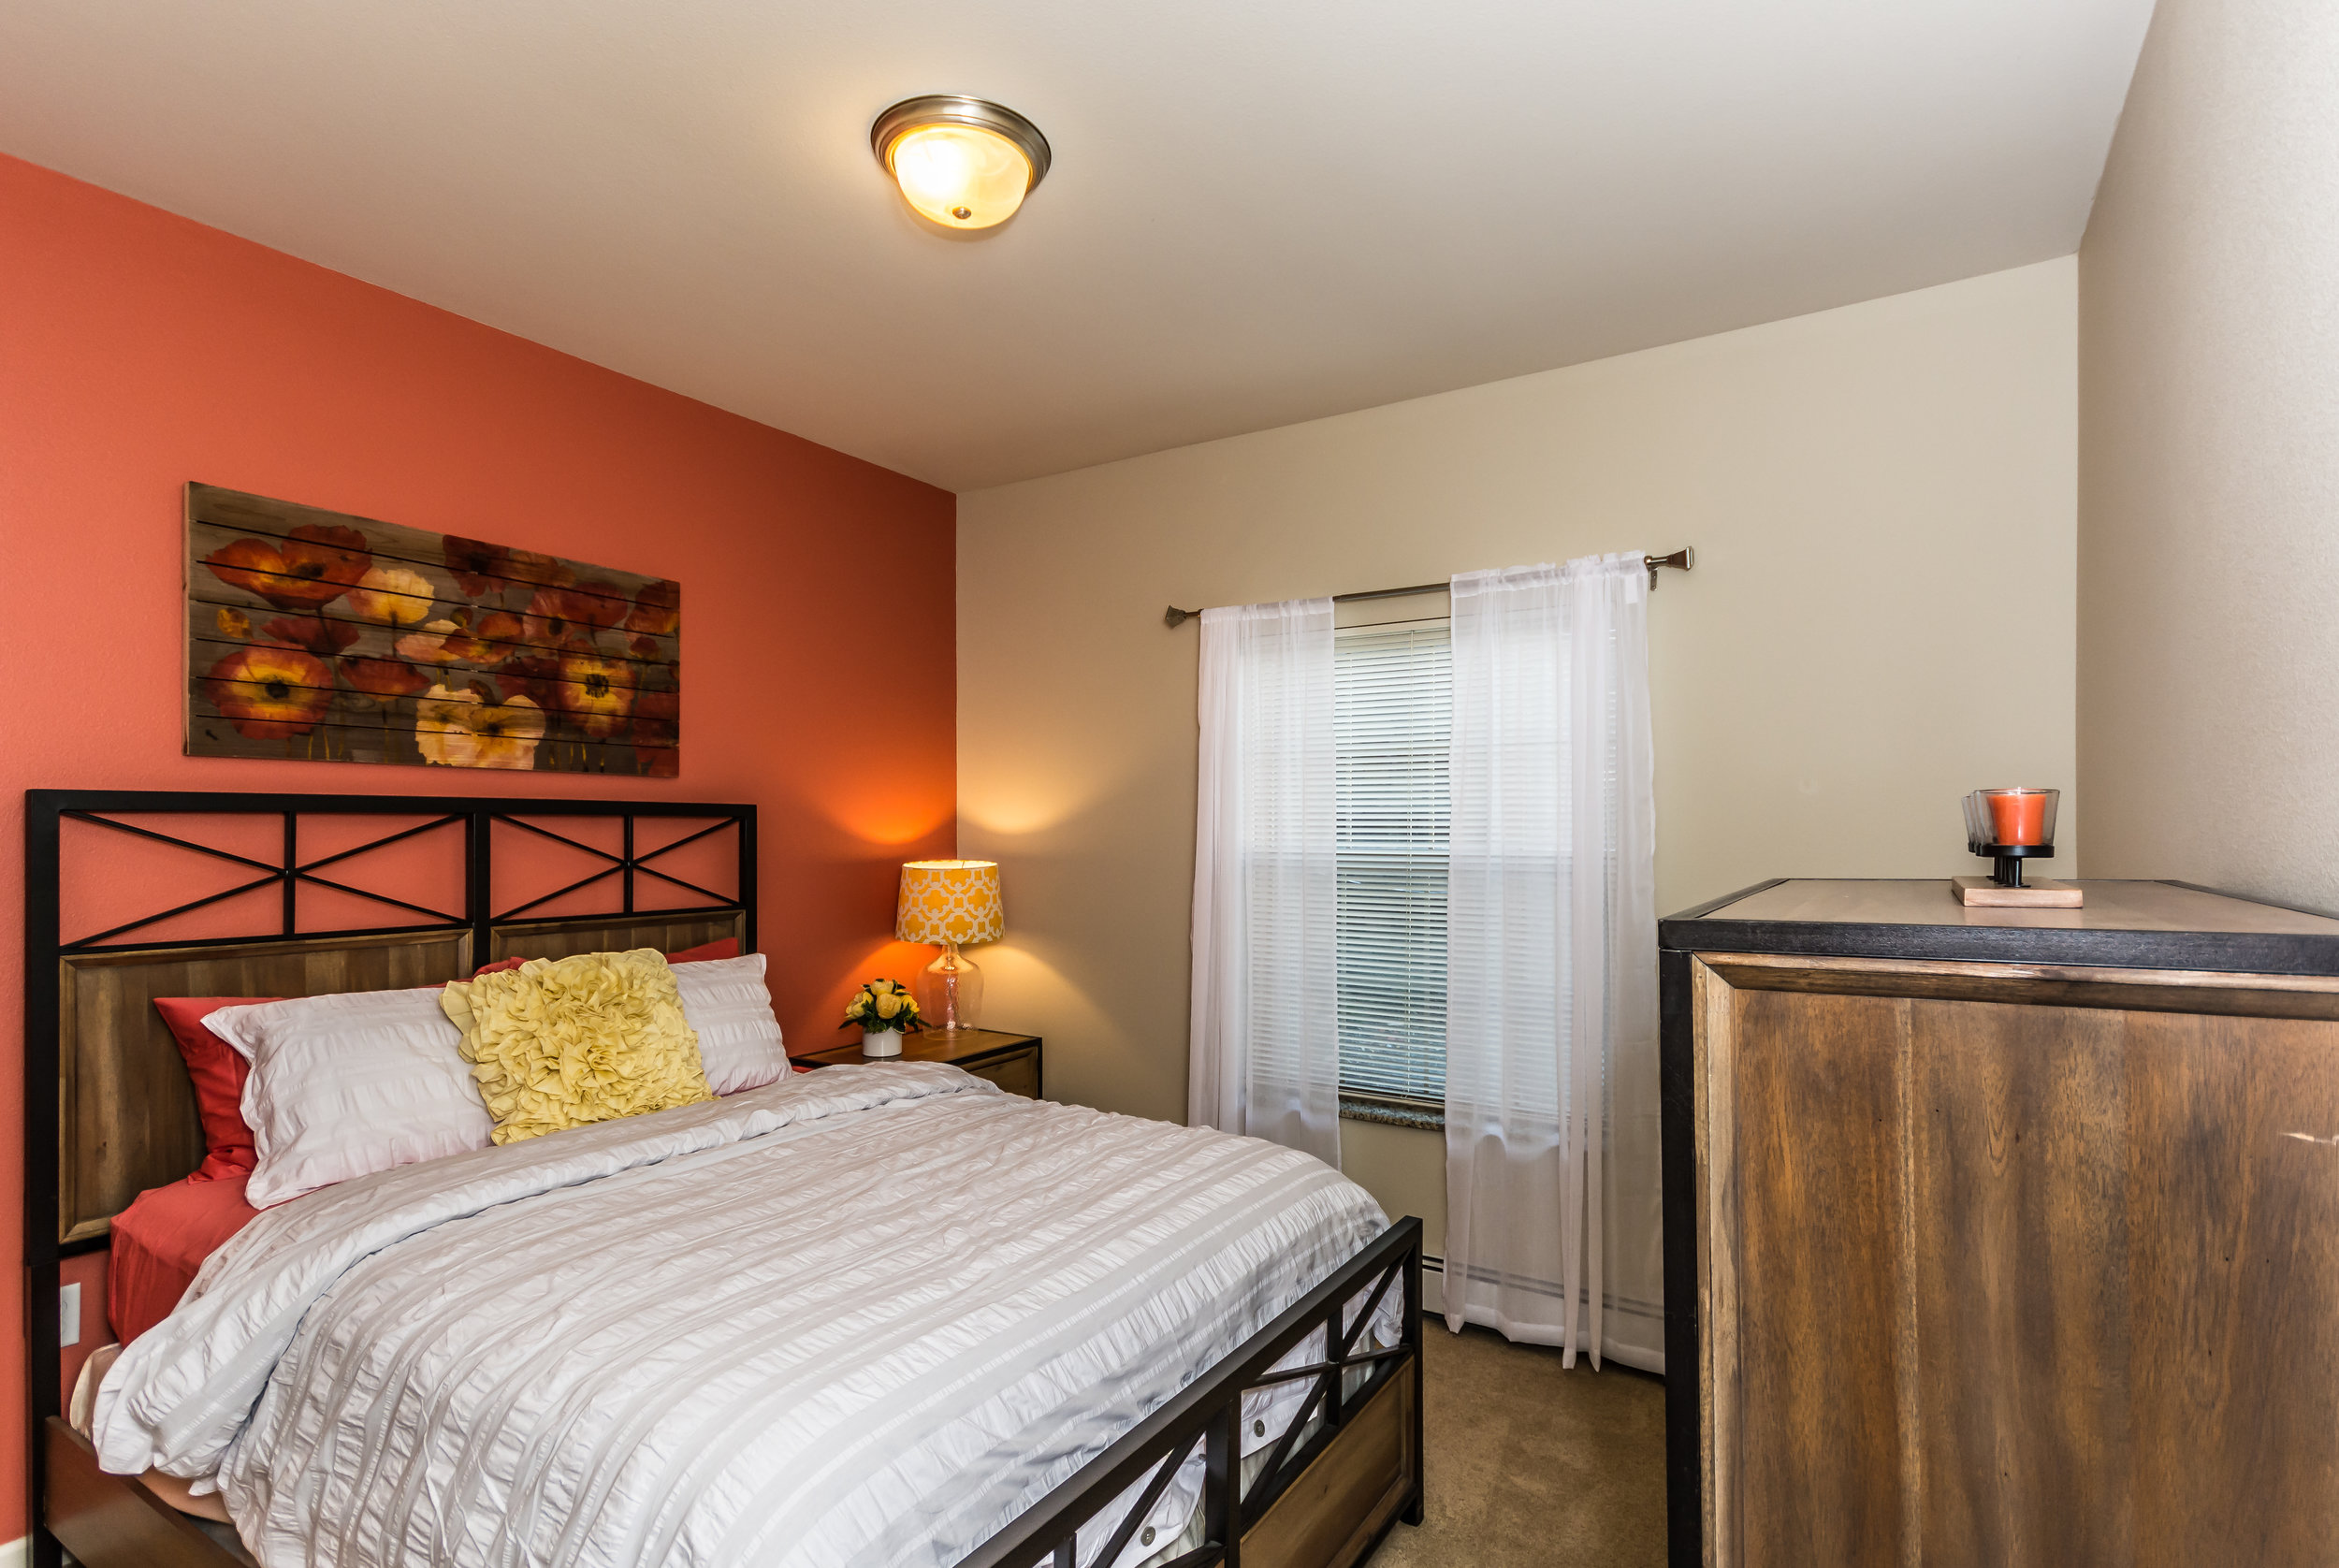 05 Add Some Color to Your Home with Accent Walls.jpg